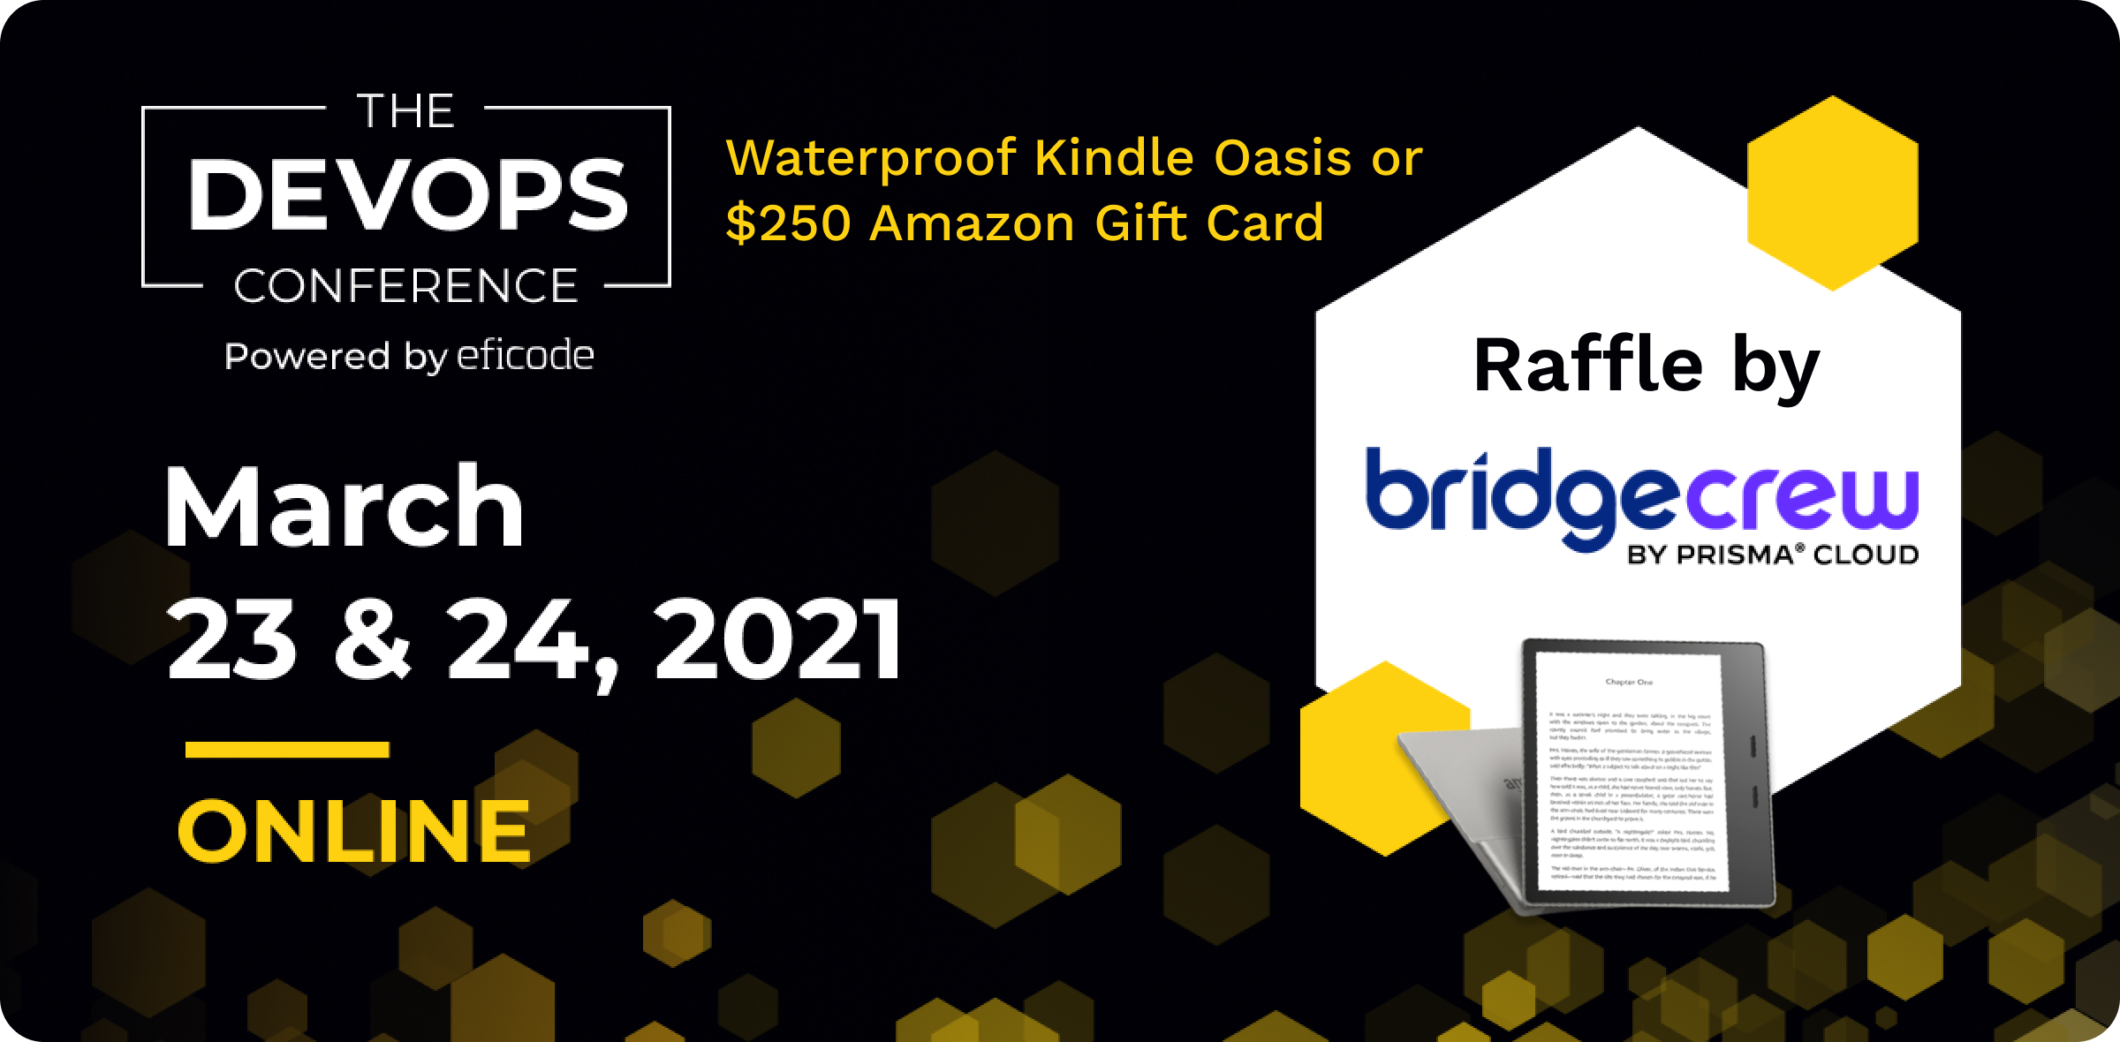 The DEVOPS Conference Raffle by Bridgecrew | Kindle Oasis or $250 Amazon Gift Card